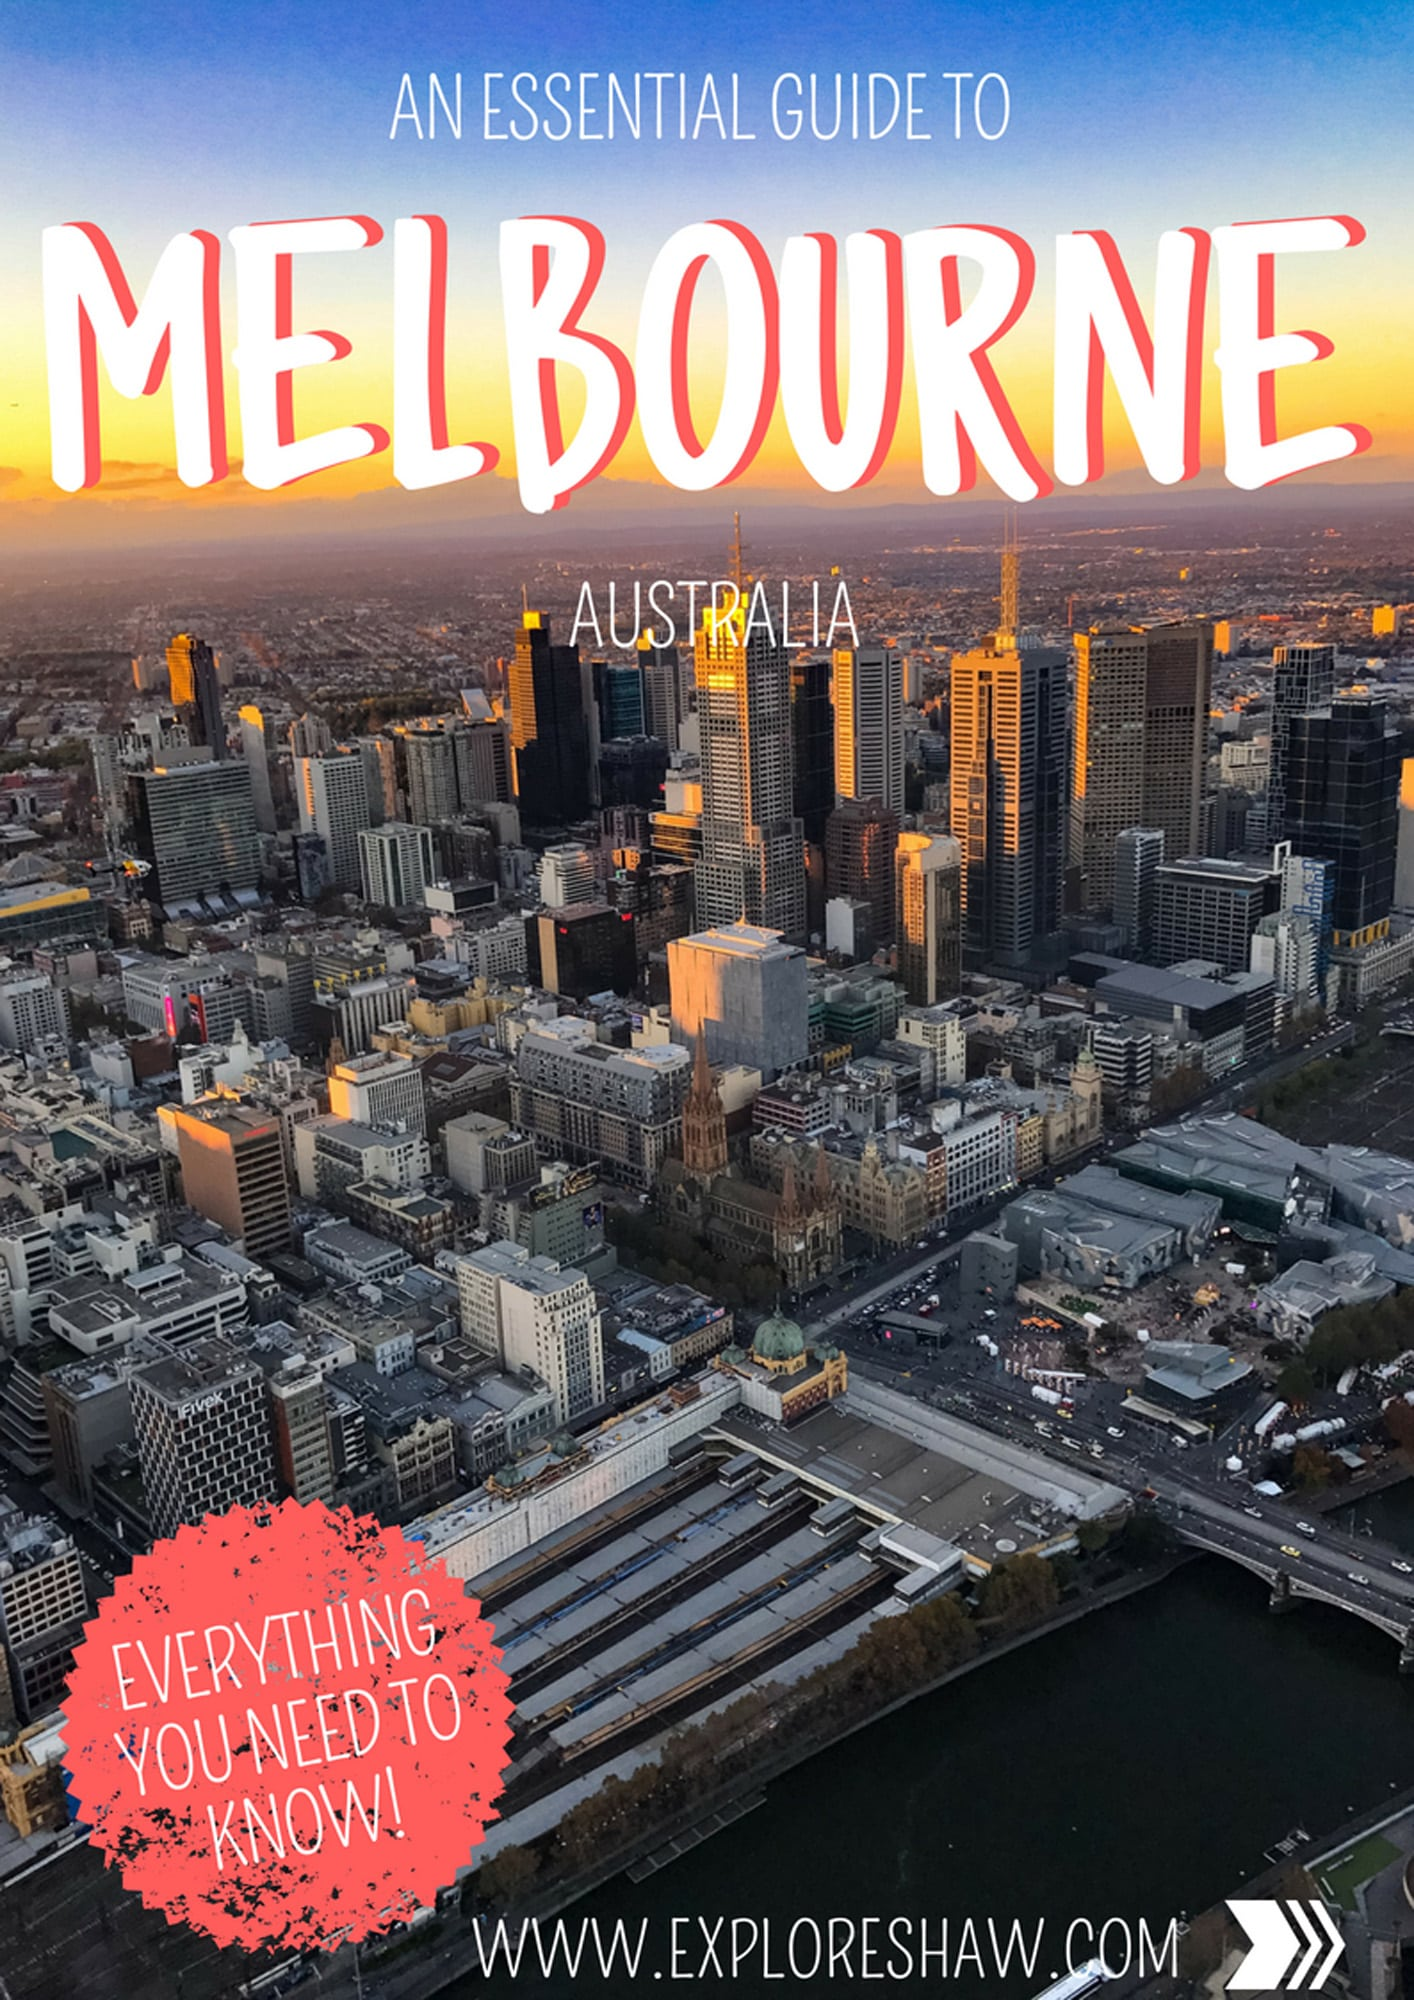 AN ESSENTIAL GUIDE TO MELBOURNE